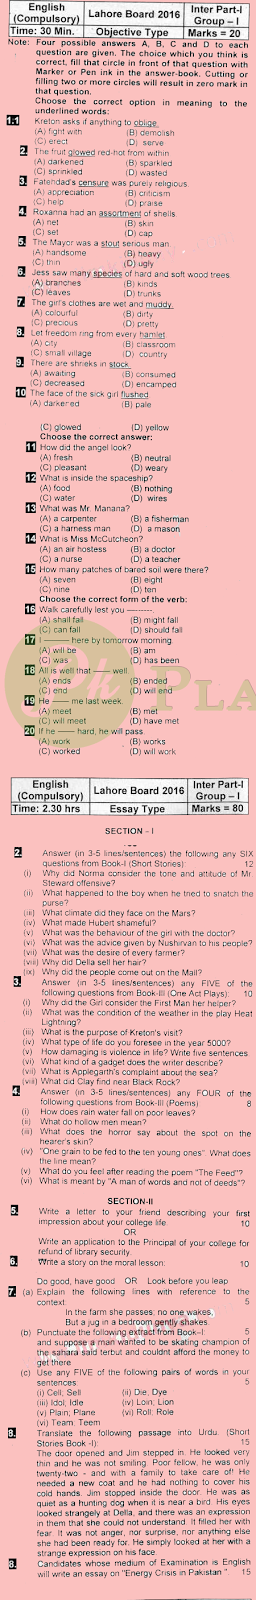 Inter Part 1 English Past Papers Lahore Board 2016